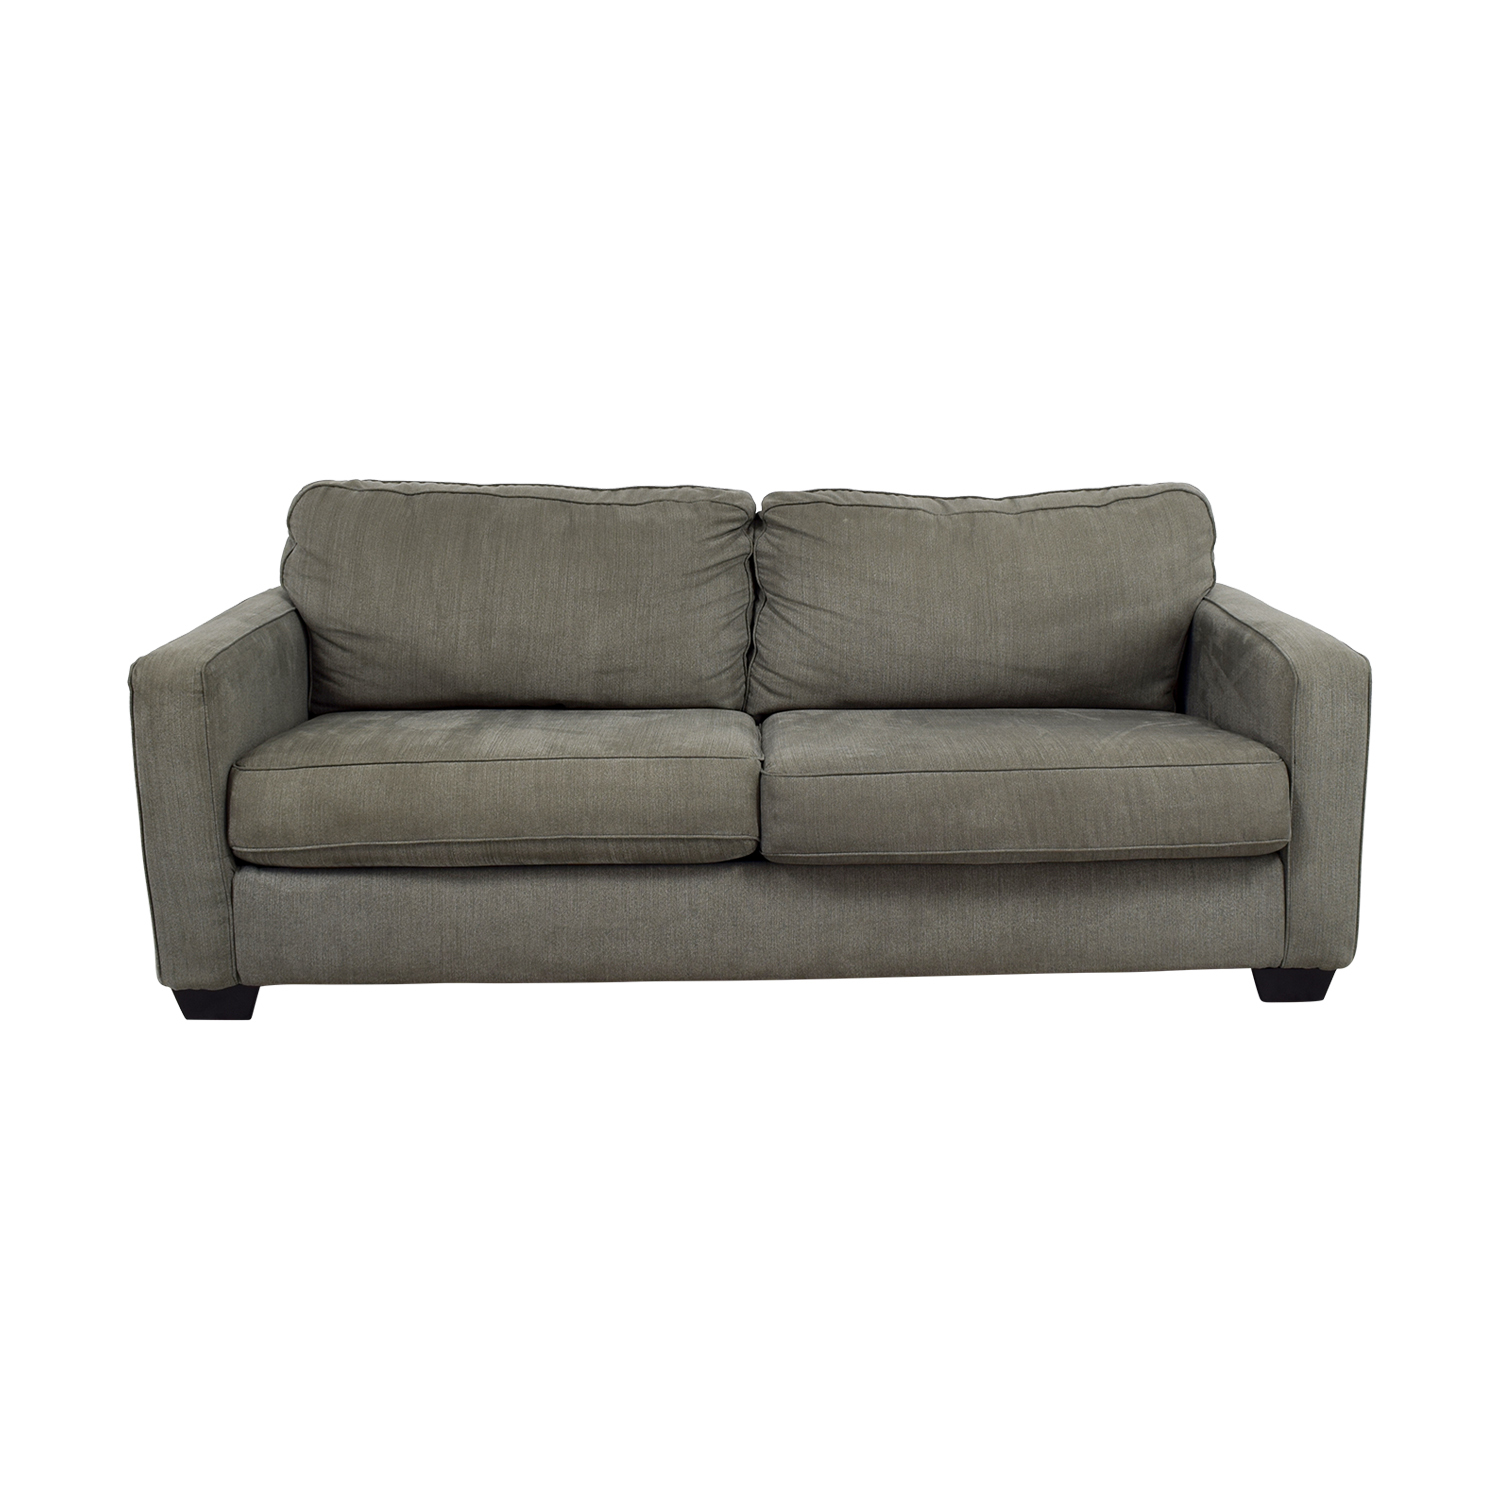 Raymour & Flanigan Raymour & Flanigan Grey Two-Cushion Sofa second hand